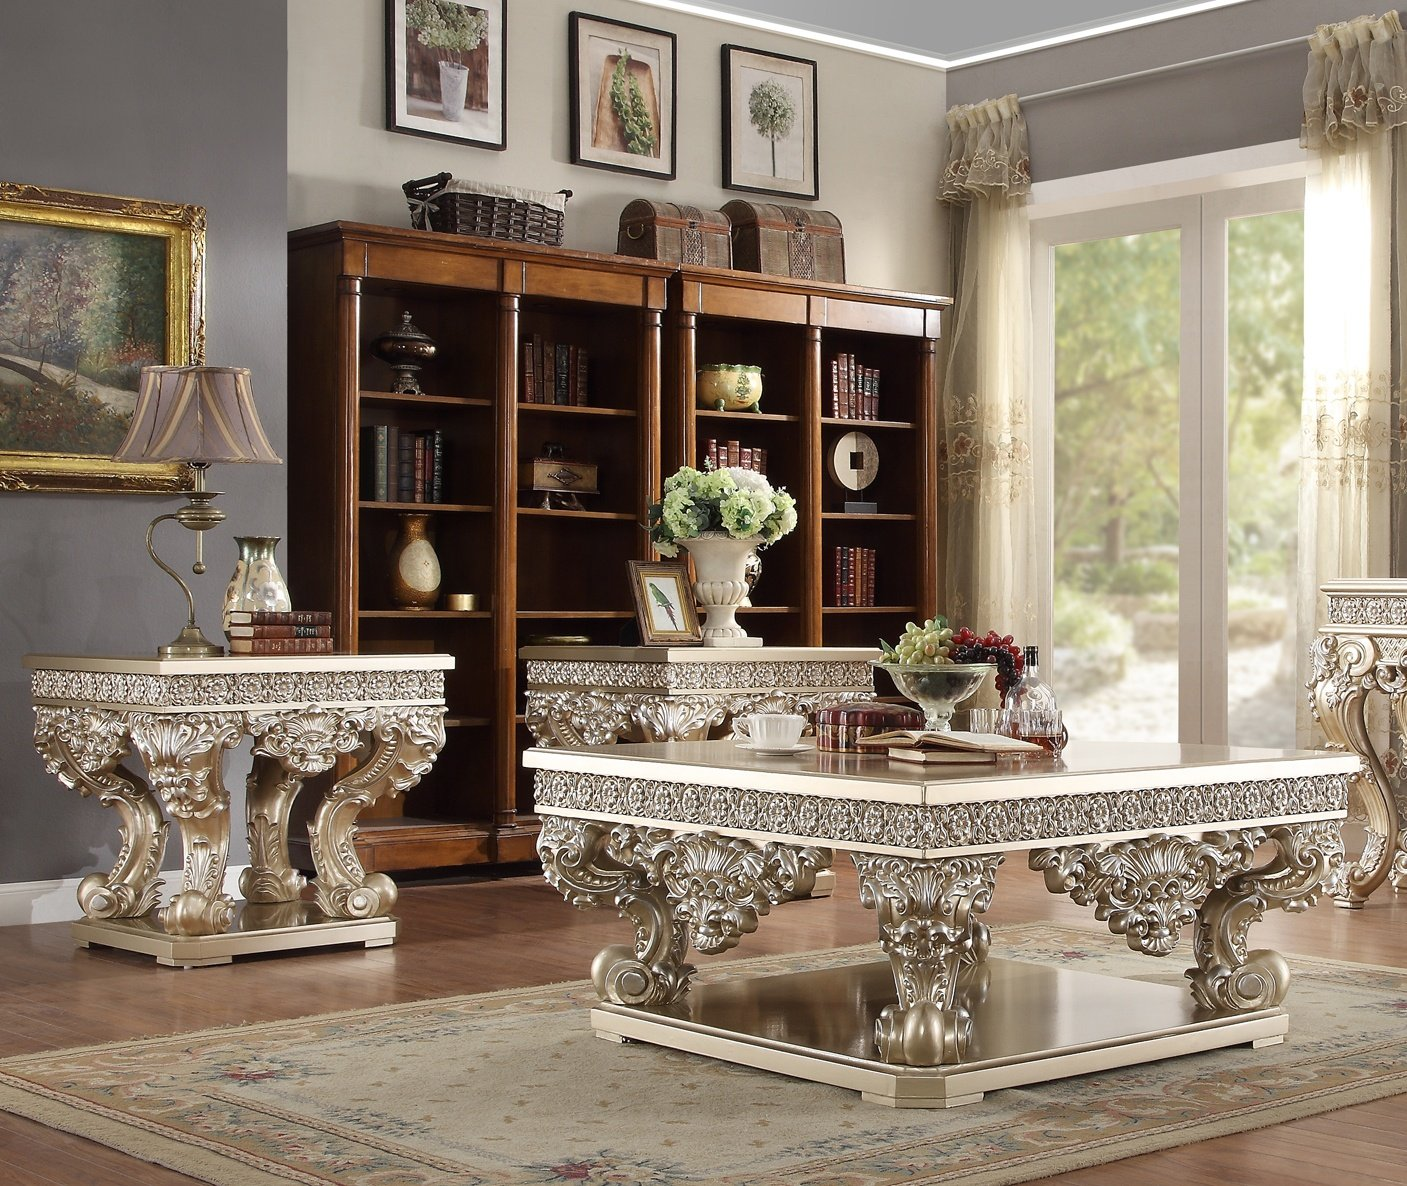 Traditional Coffee Table Set 3 PCS in Gray Wood Traditional Style Homey Design HD-8022